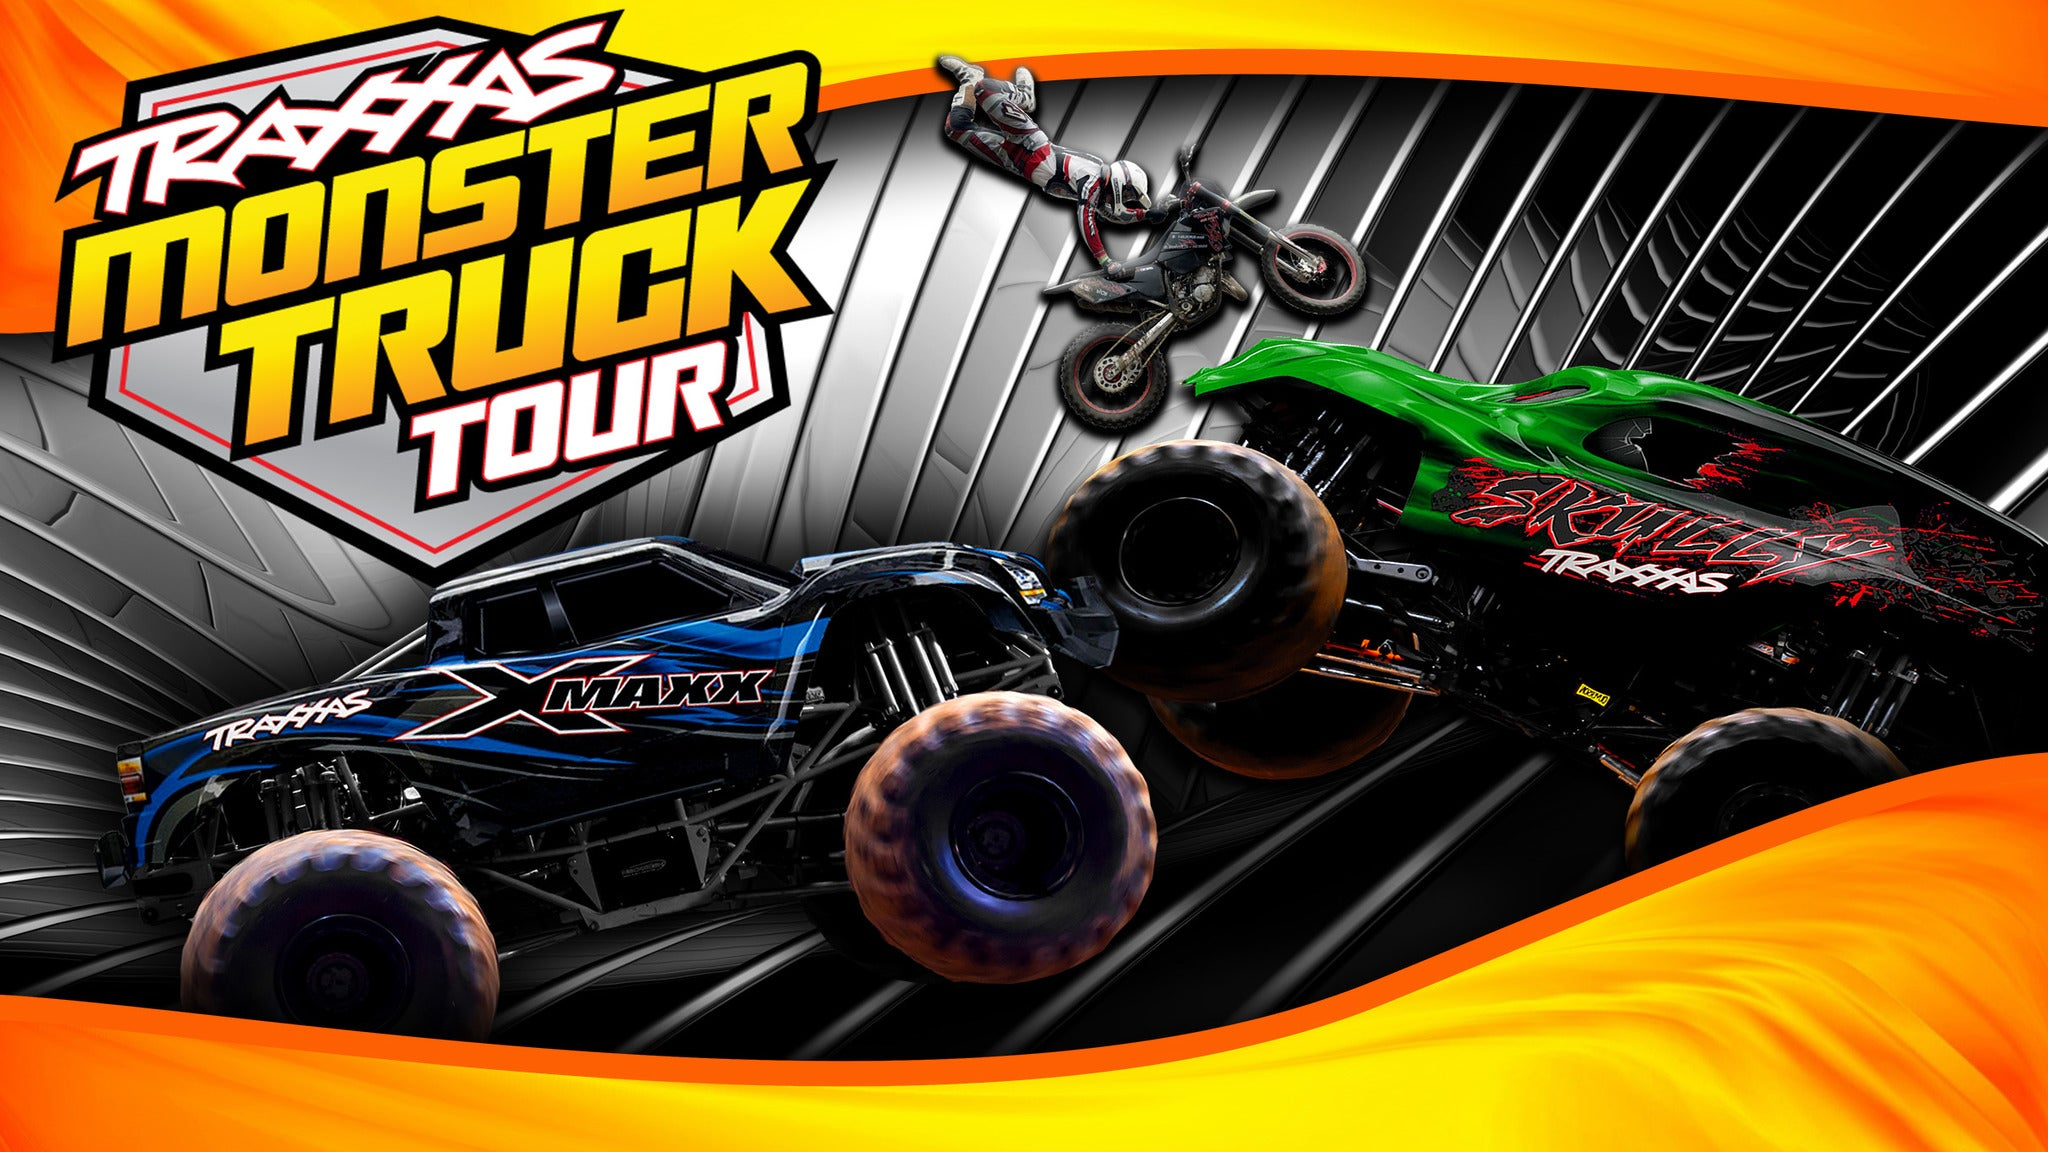 Traxxas Monster Truck Tour at Five Flags Center